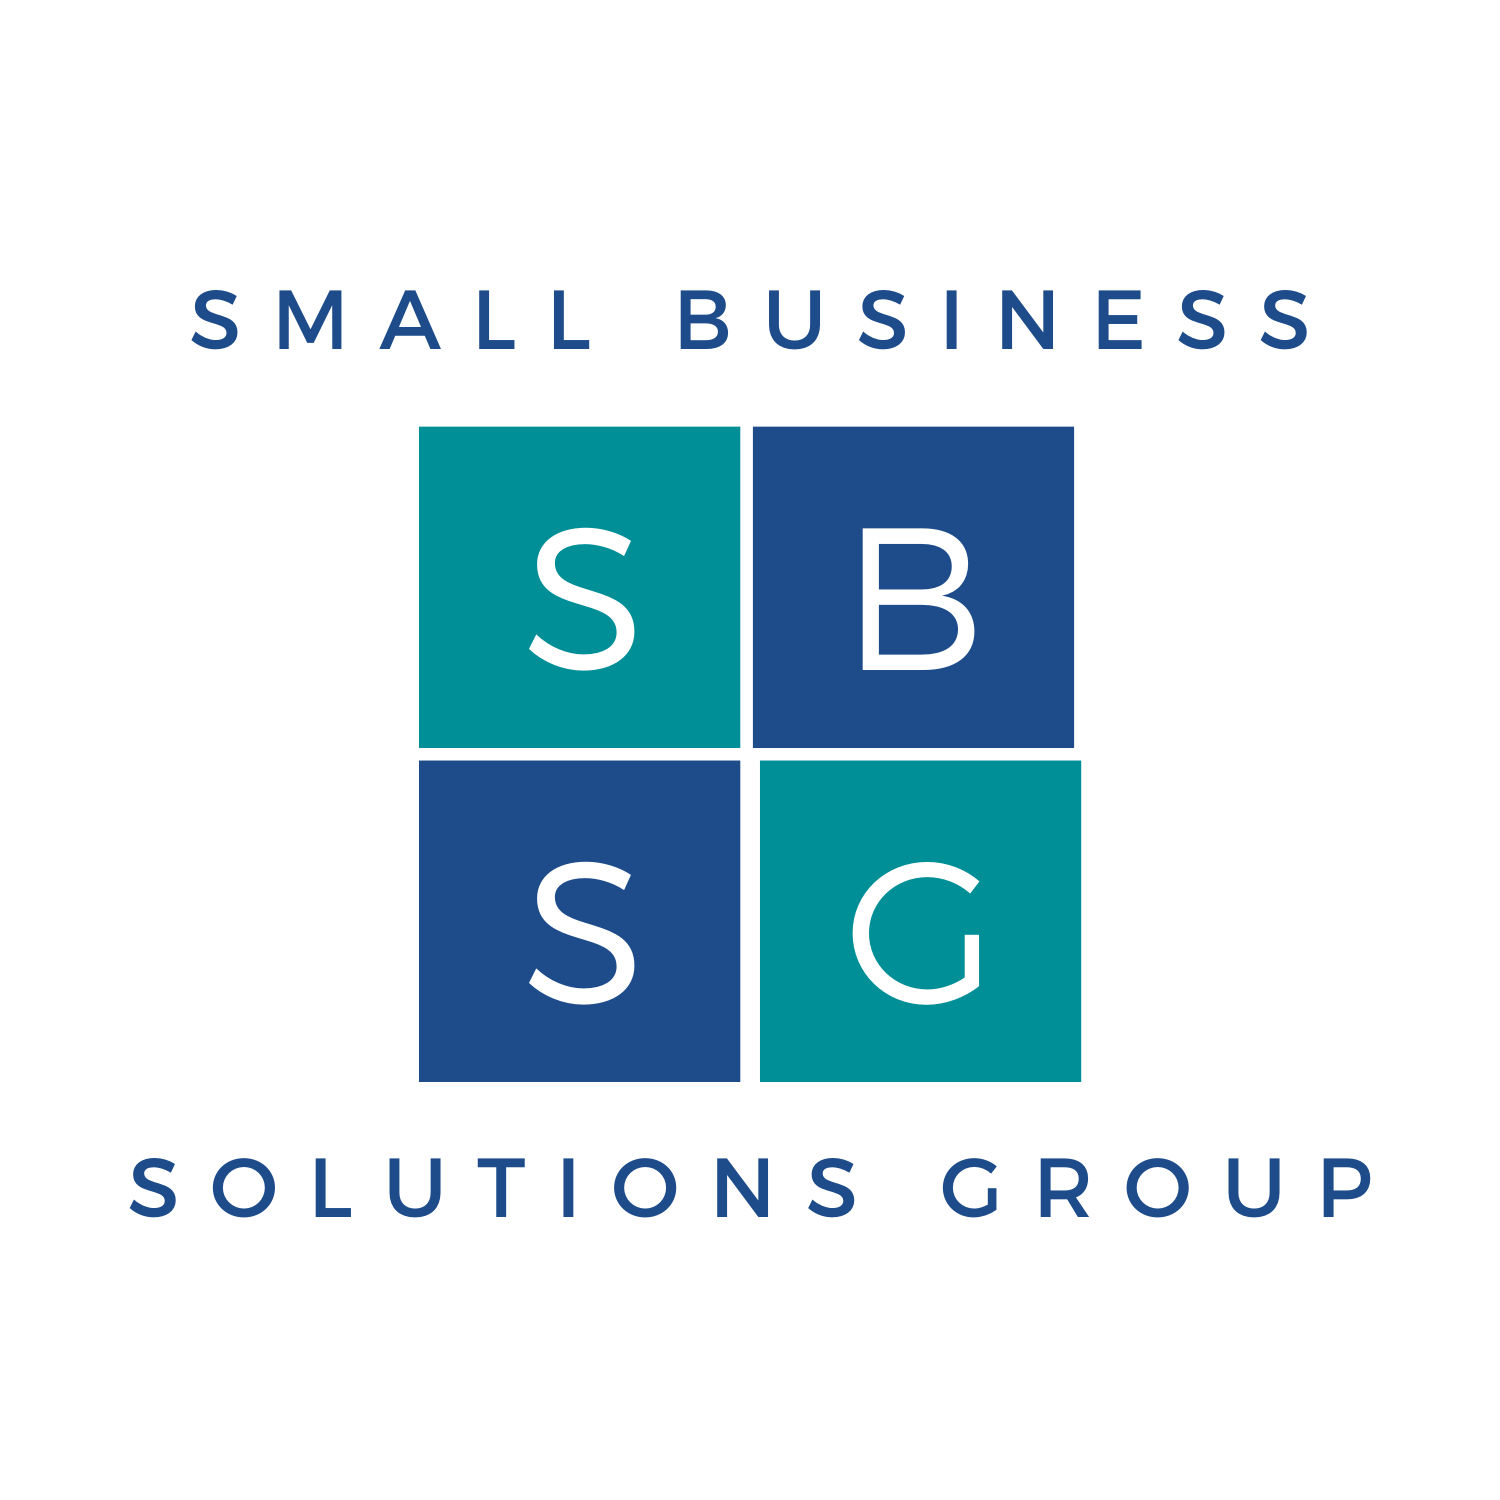 Small Business Solutions Group Inc., contracted by NetBuzz Placement Marketing Ltd., Announces Available Work from Home Positions